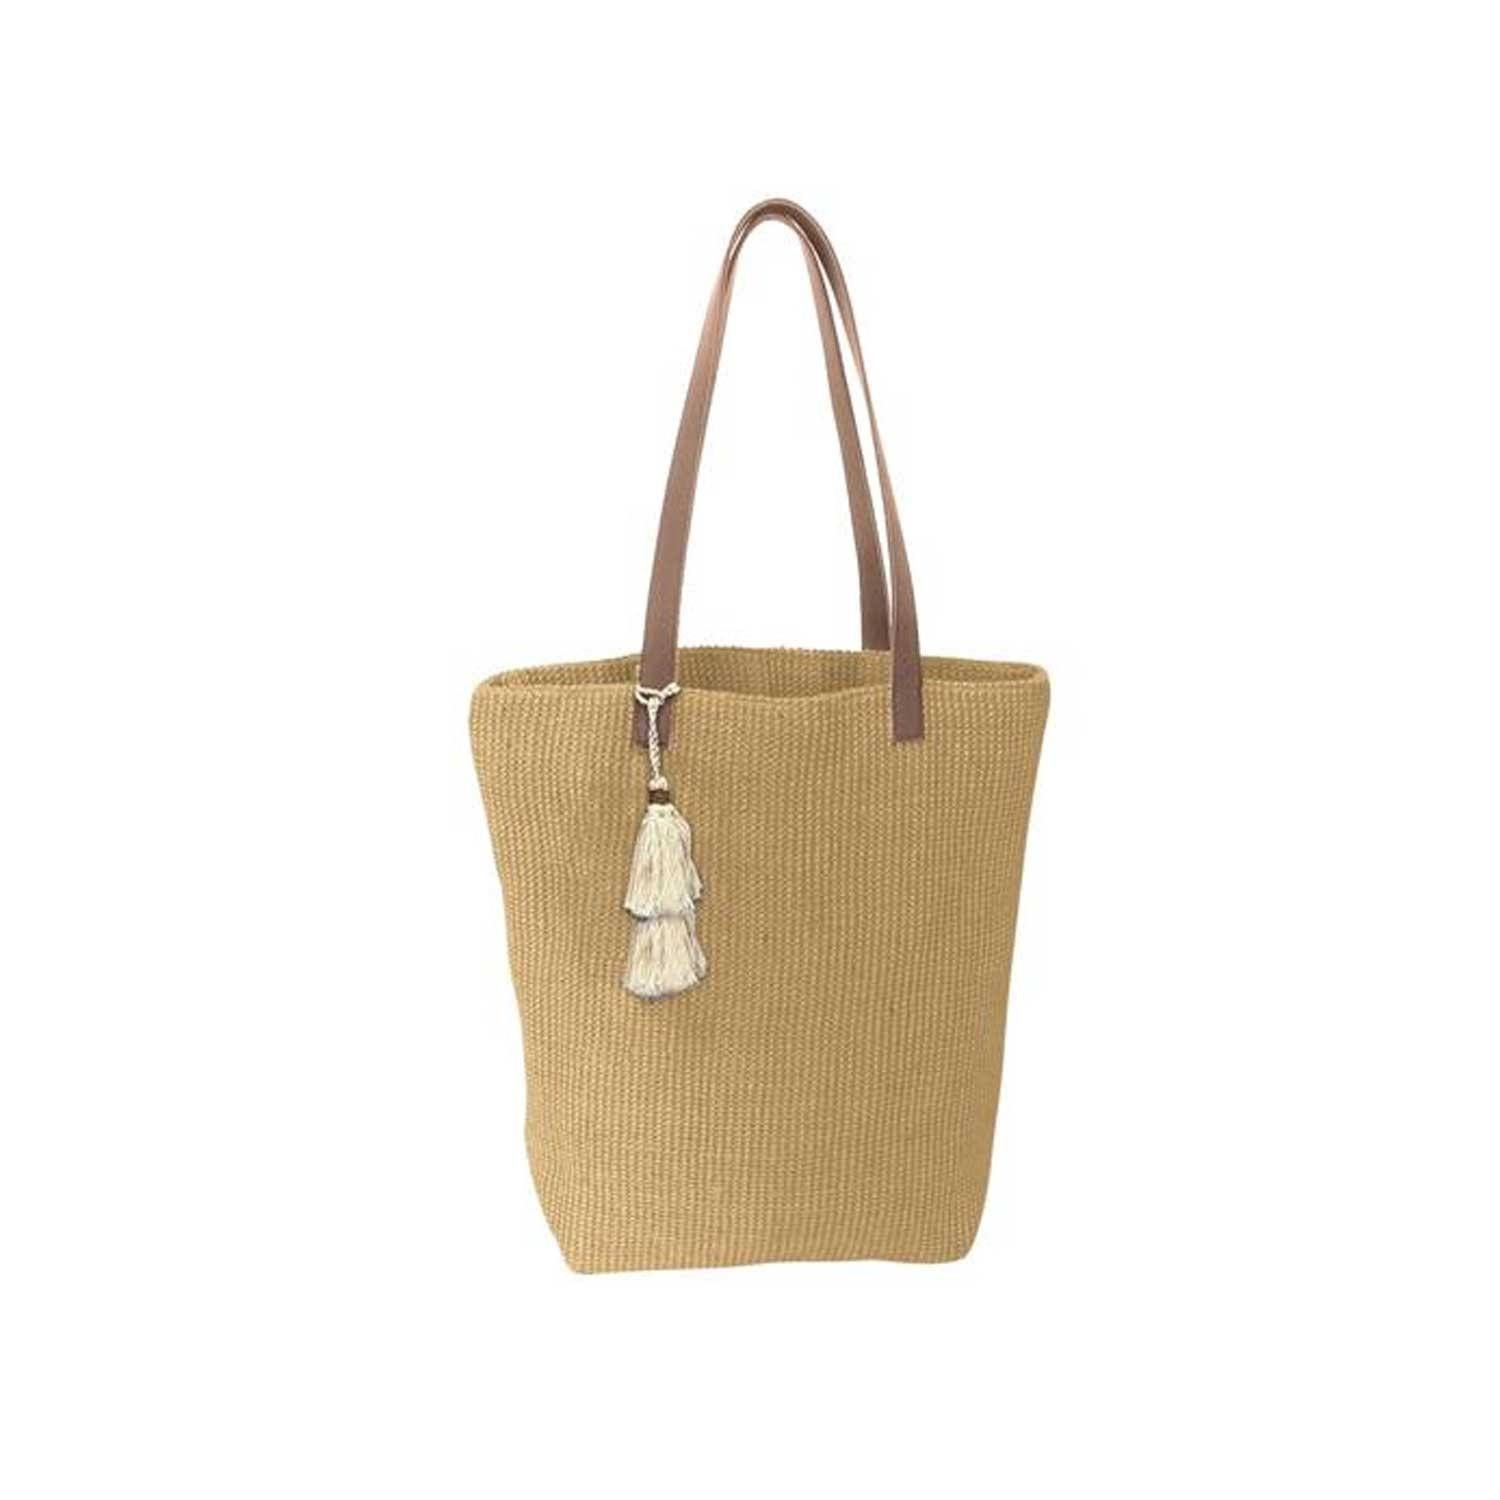 Karma Solid Jute Tote Bag - Tan